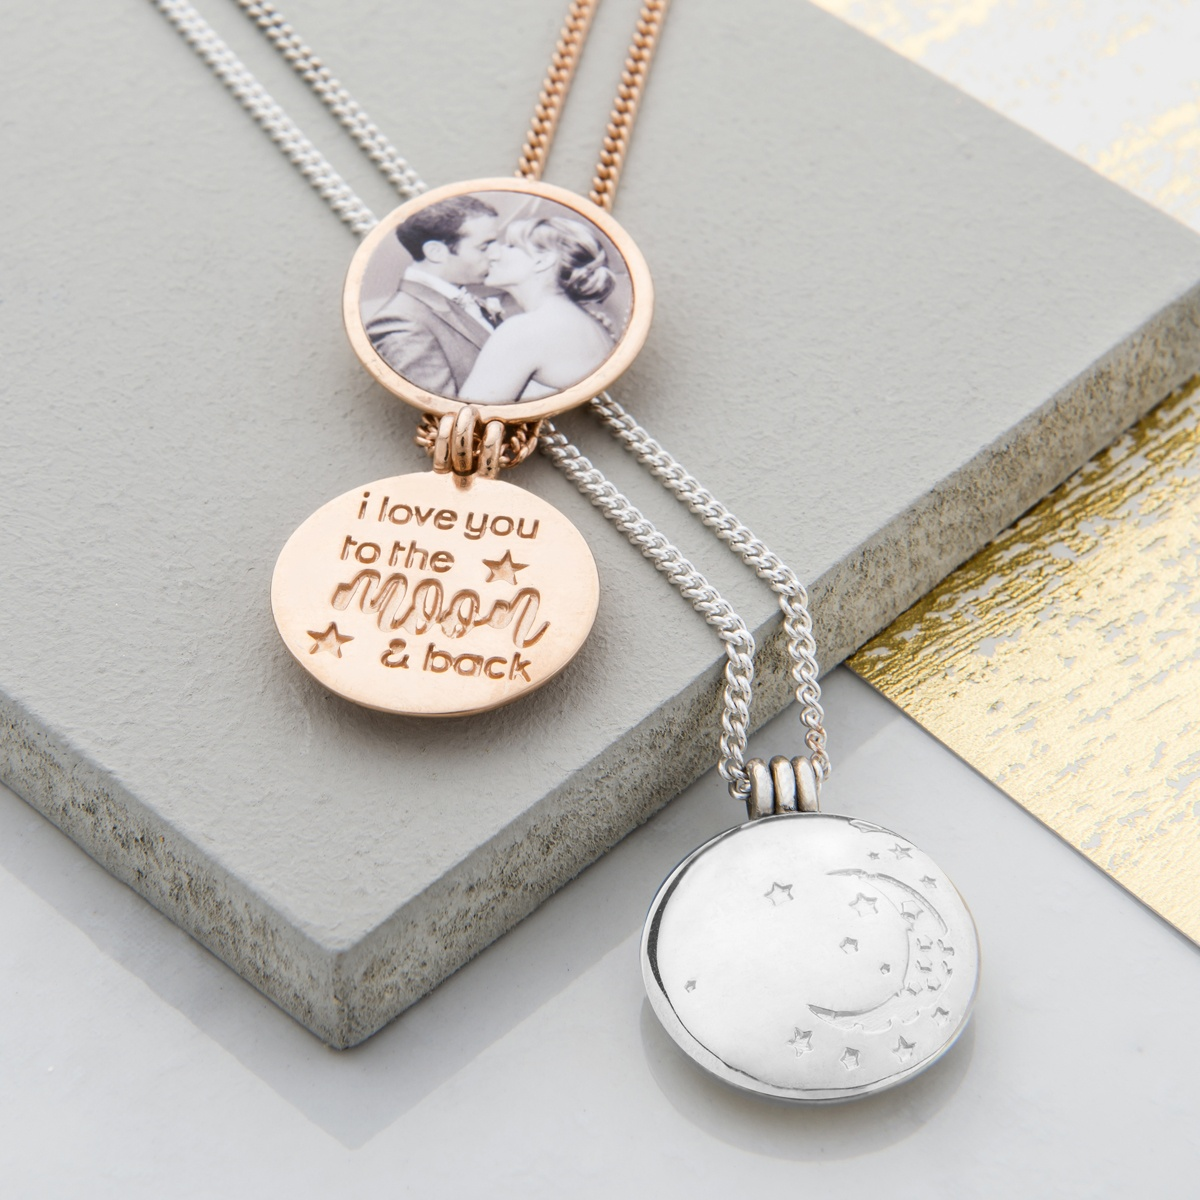 I love you to the moon and back locket